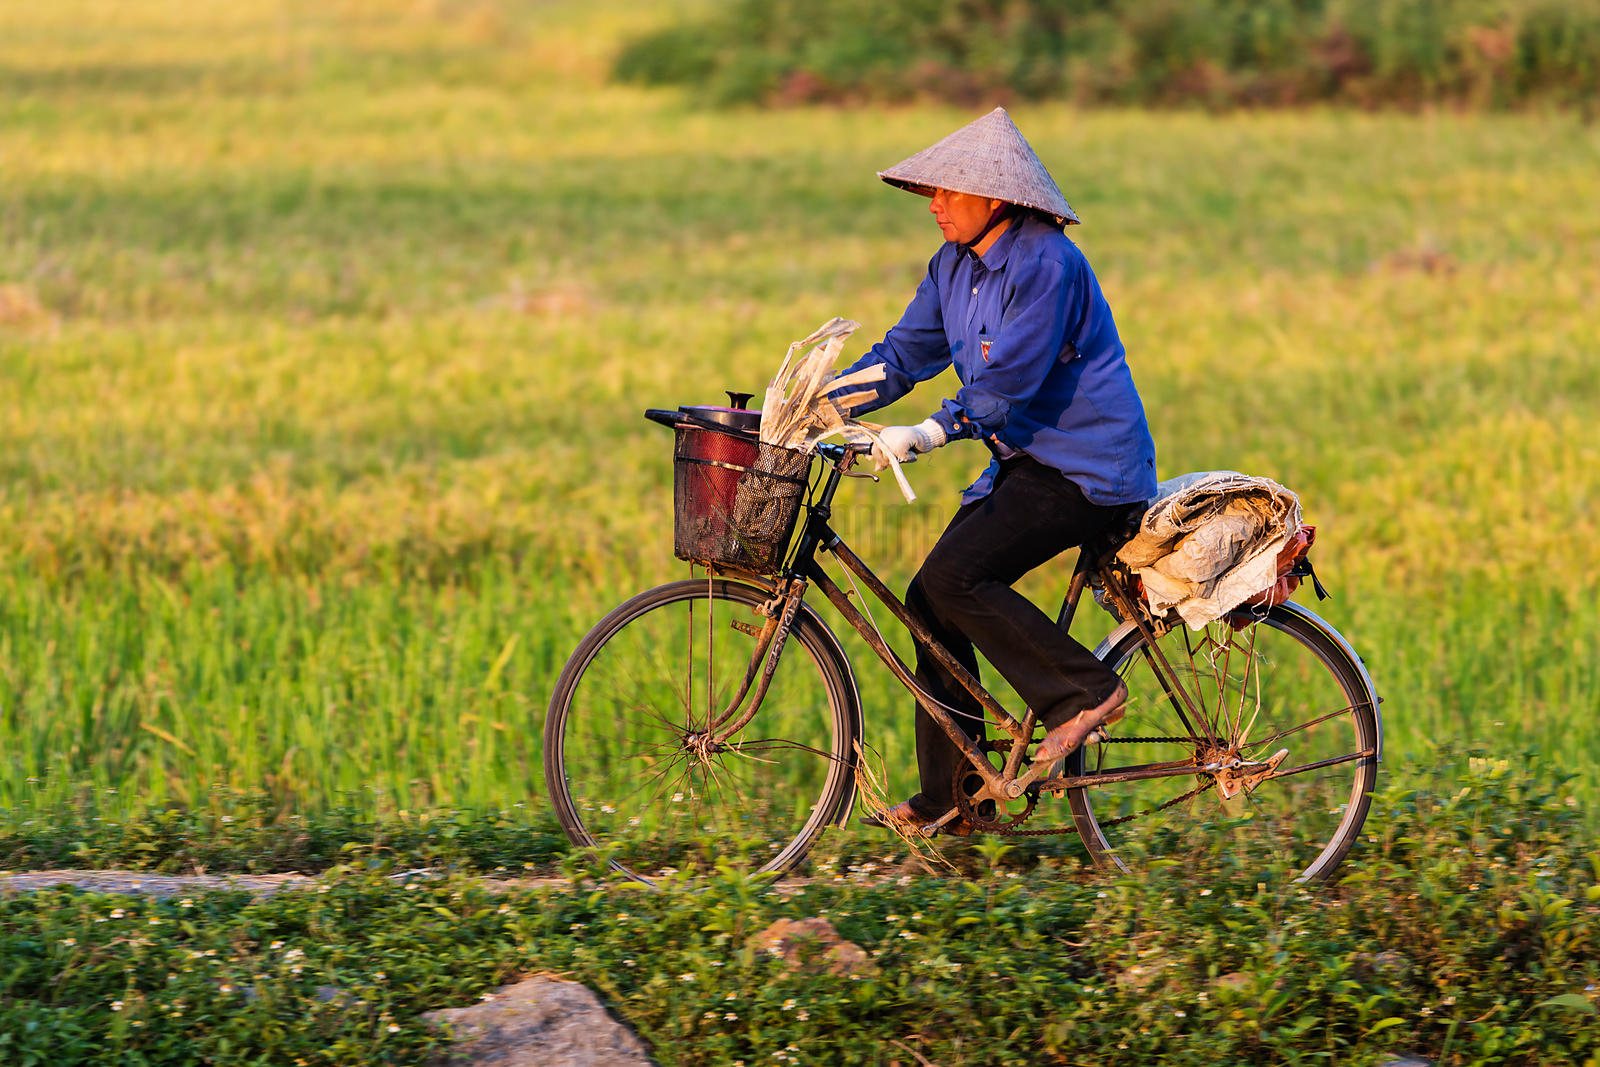 Rice Worker on her Bike at the End of ther Day